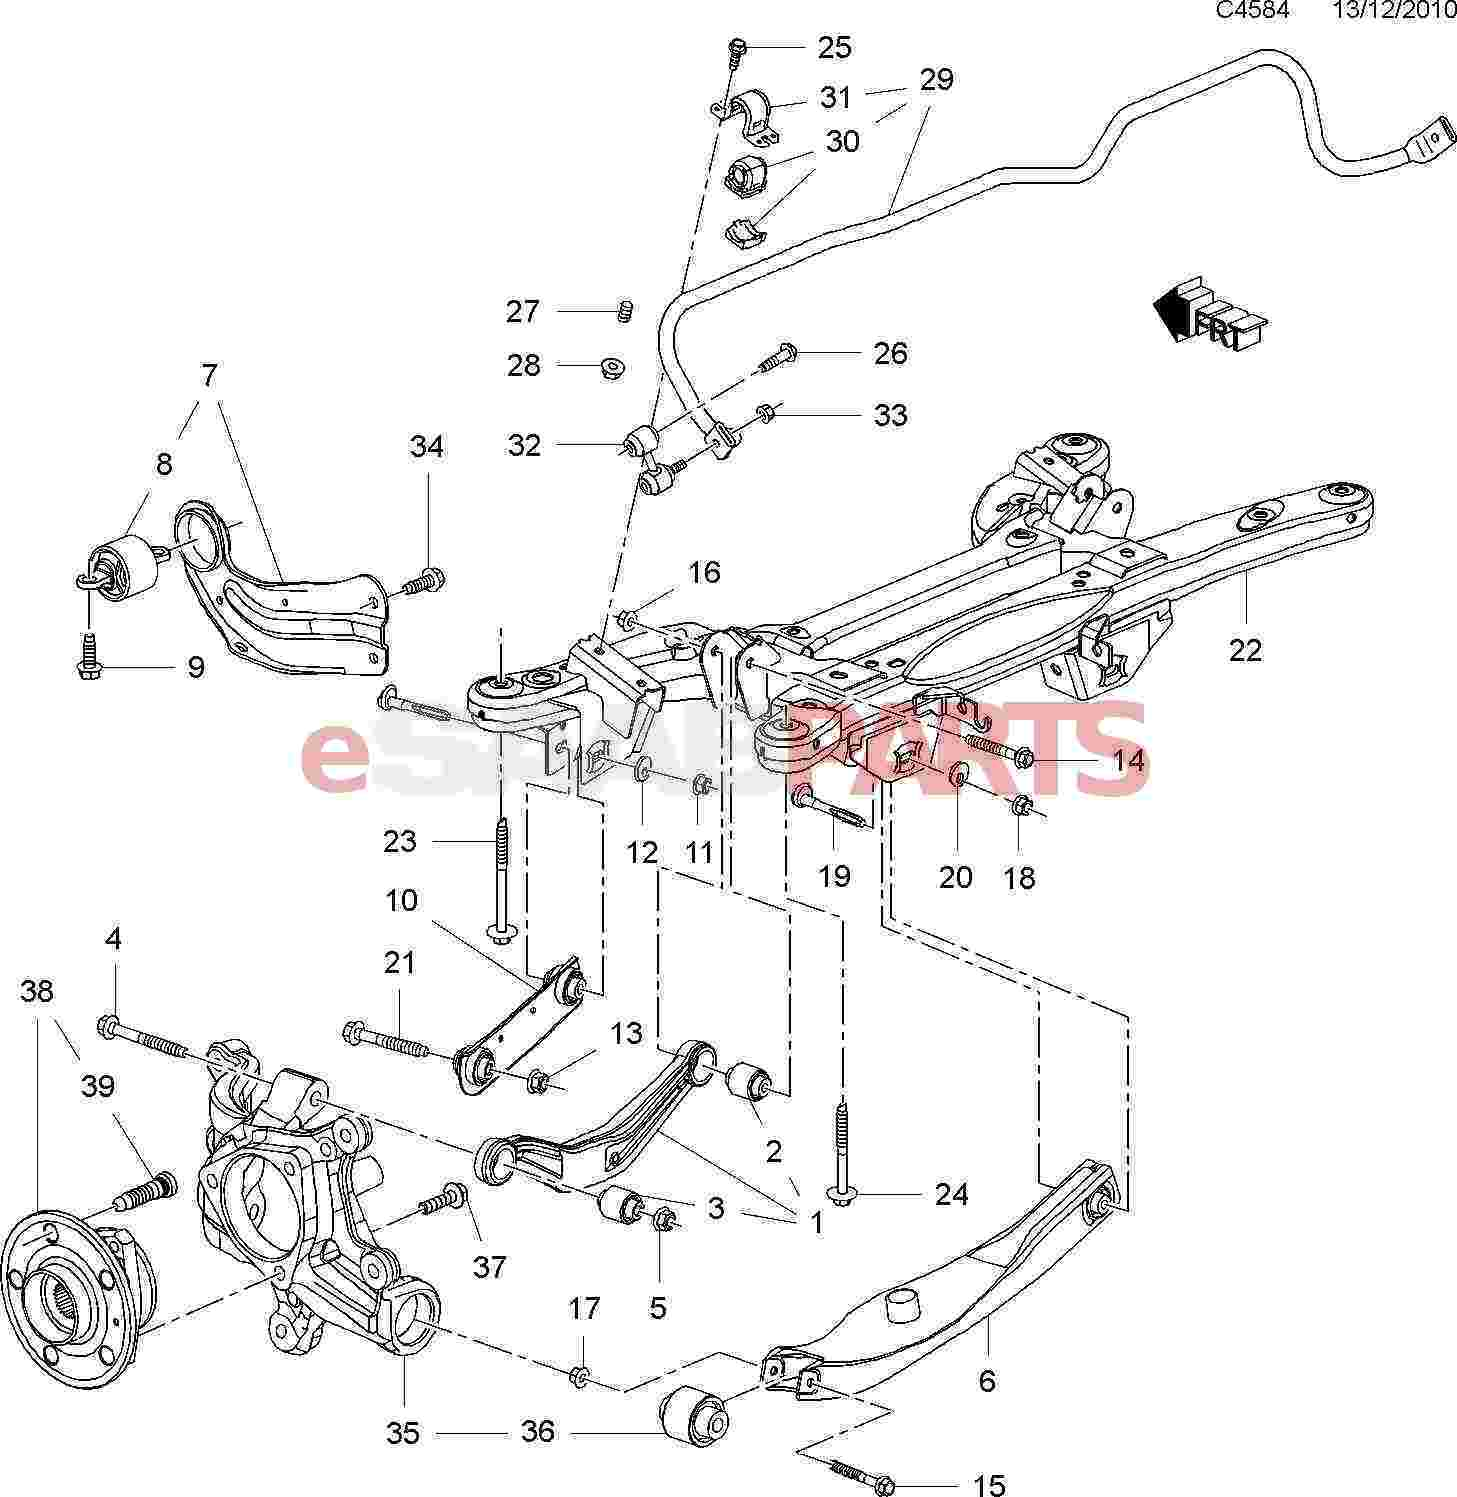 Saab 9 3 Fuse Box Diagram On Air Ride Suspension Wiring 5 Rear Imageresizertool Com